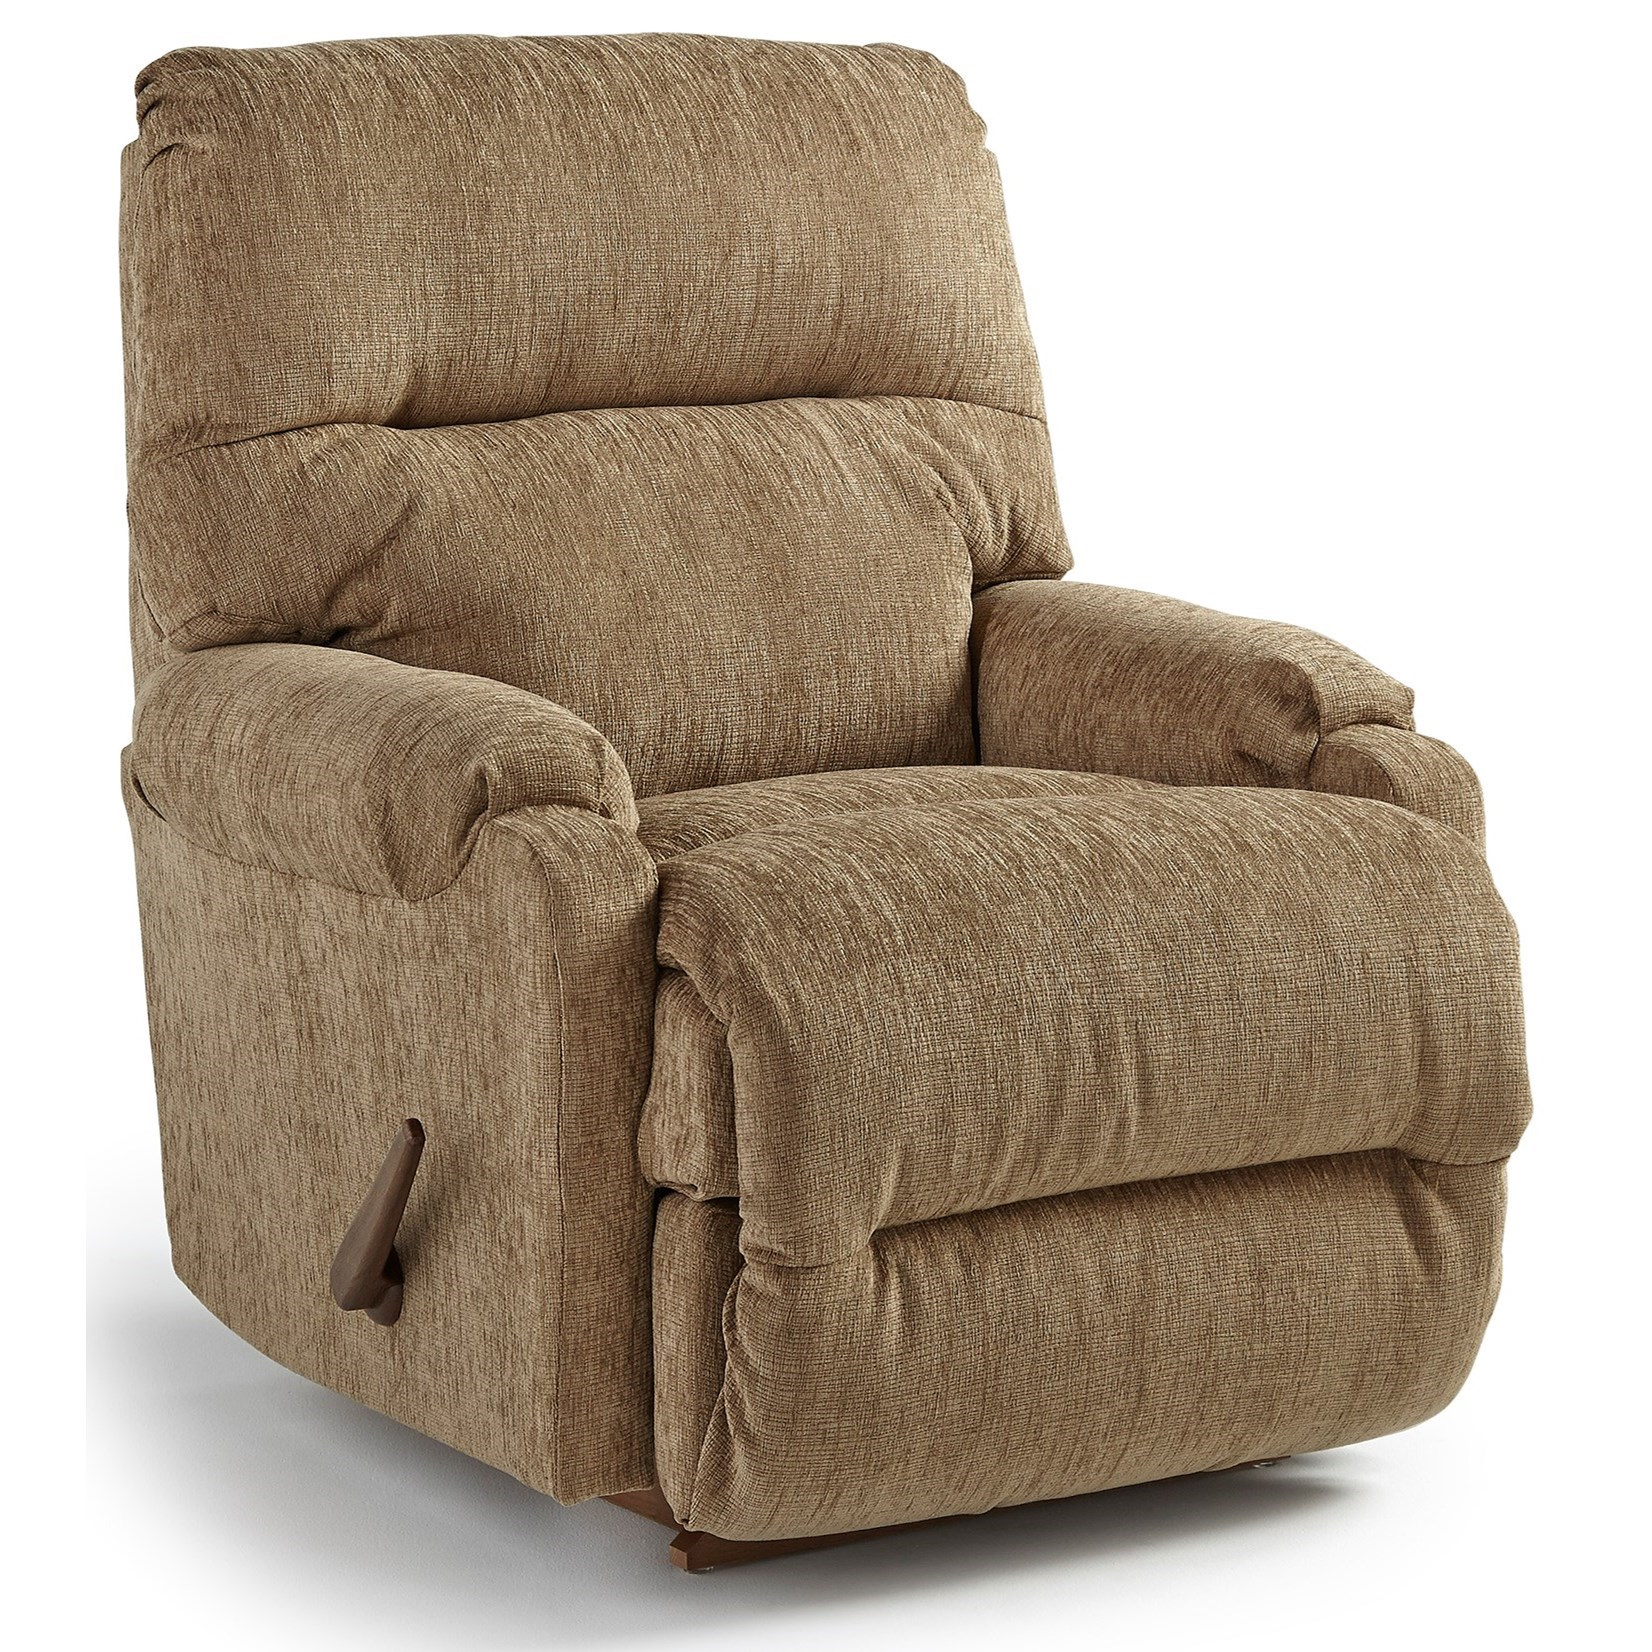 Cannes Rocker Recliner by Best Home Furnishings at Alison Craig Home Furnishings